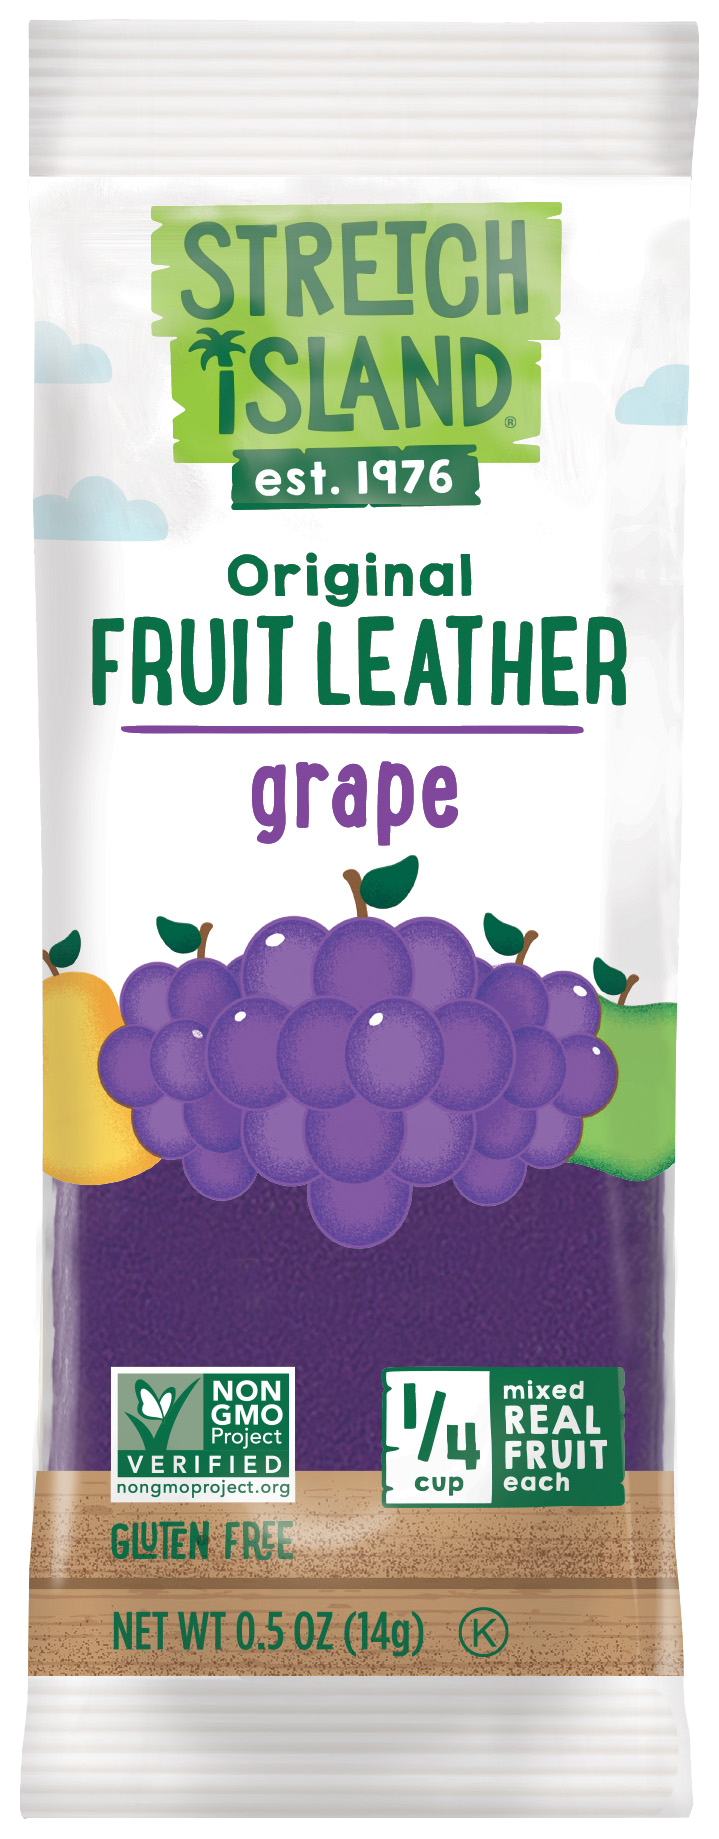 Healthy Office Snacks, Stretch Island Fruit Leather Grape